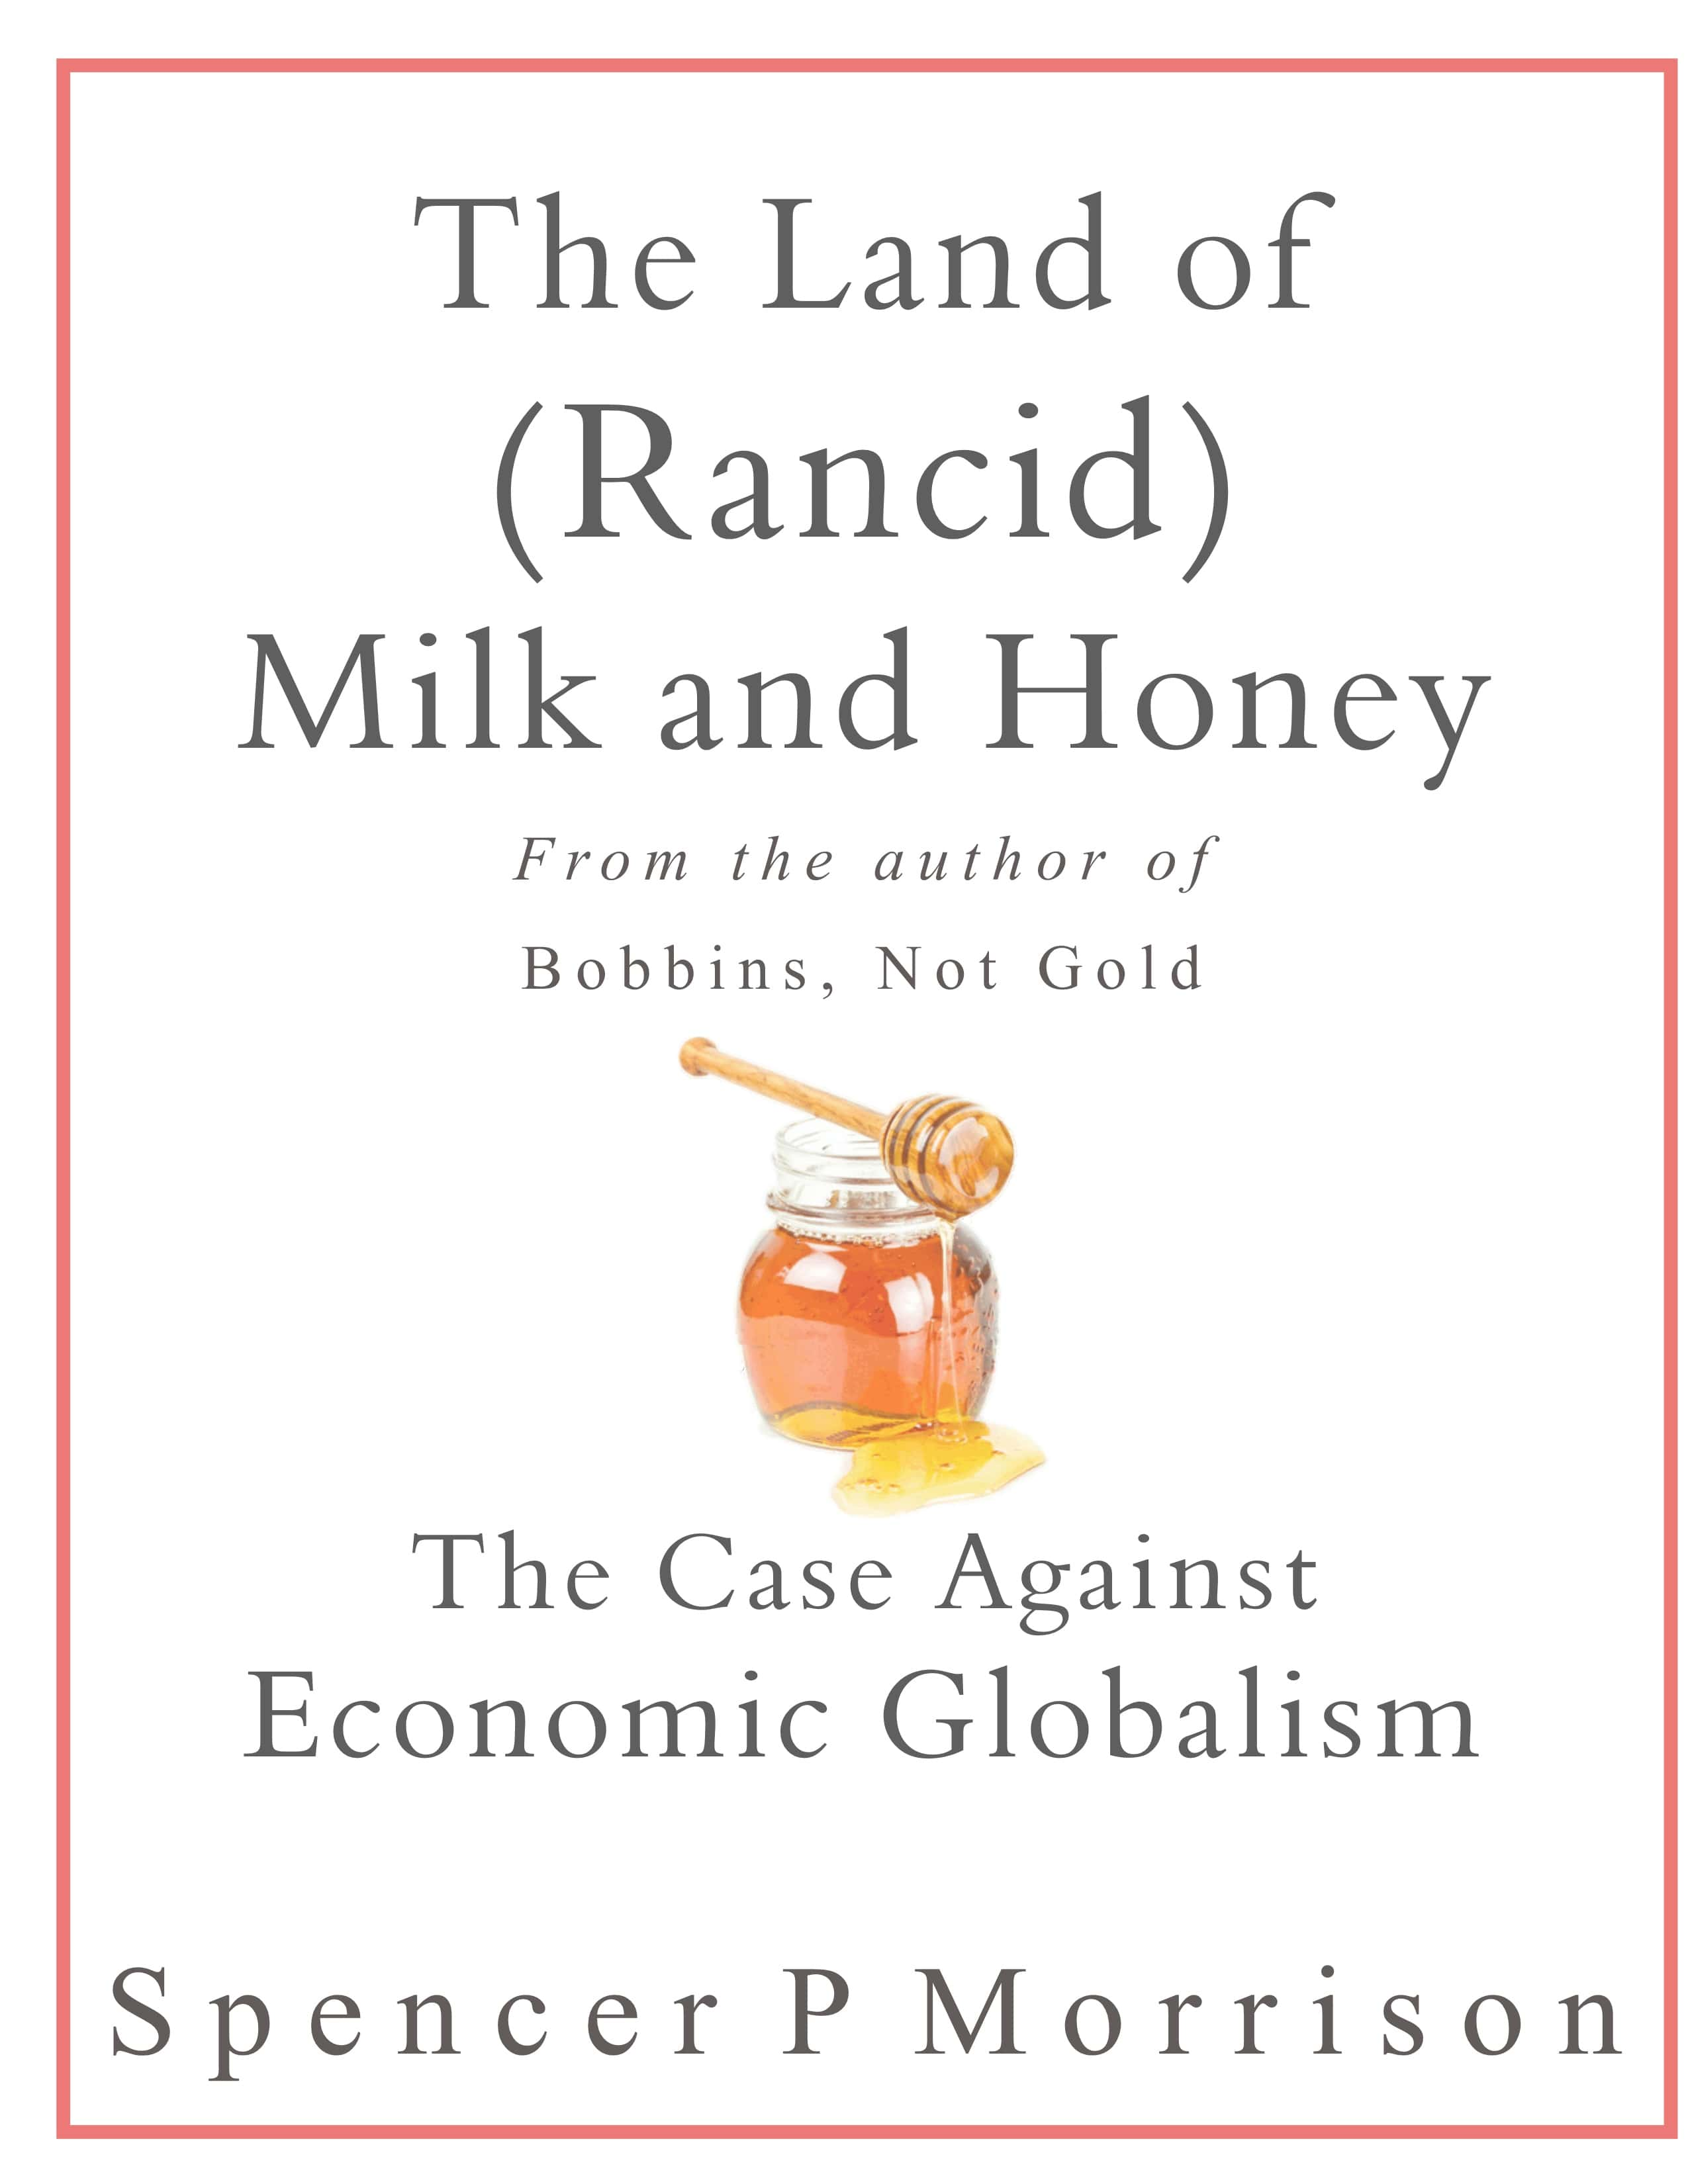 the Land of (Rancid) Milk and Honey: a book against economic globalism and America's economy, by Spencer P Morrison